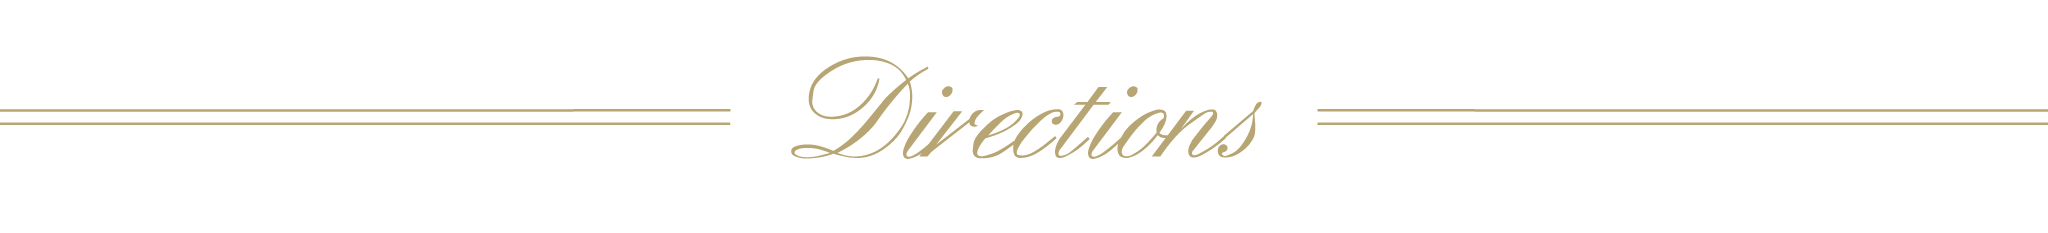 Directions Banner